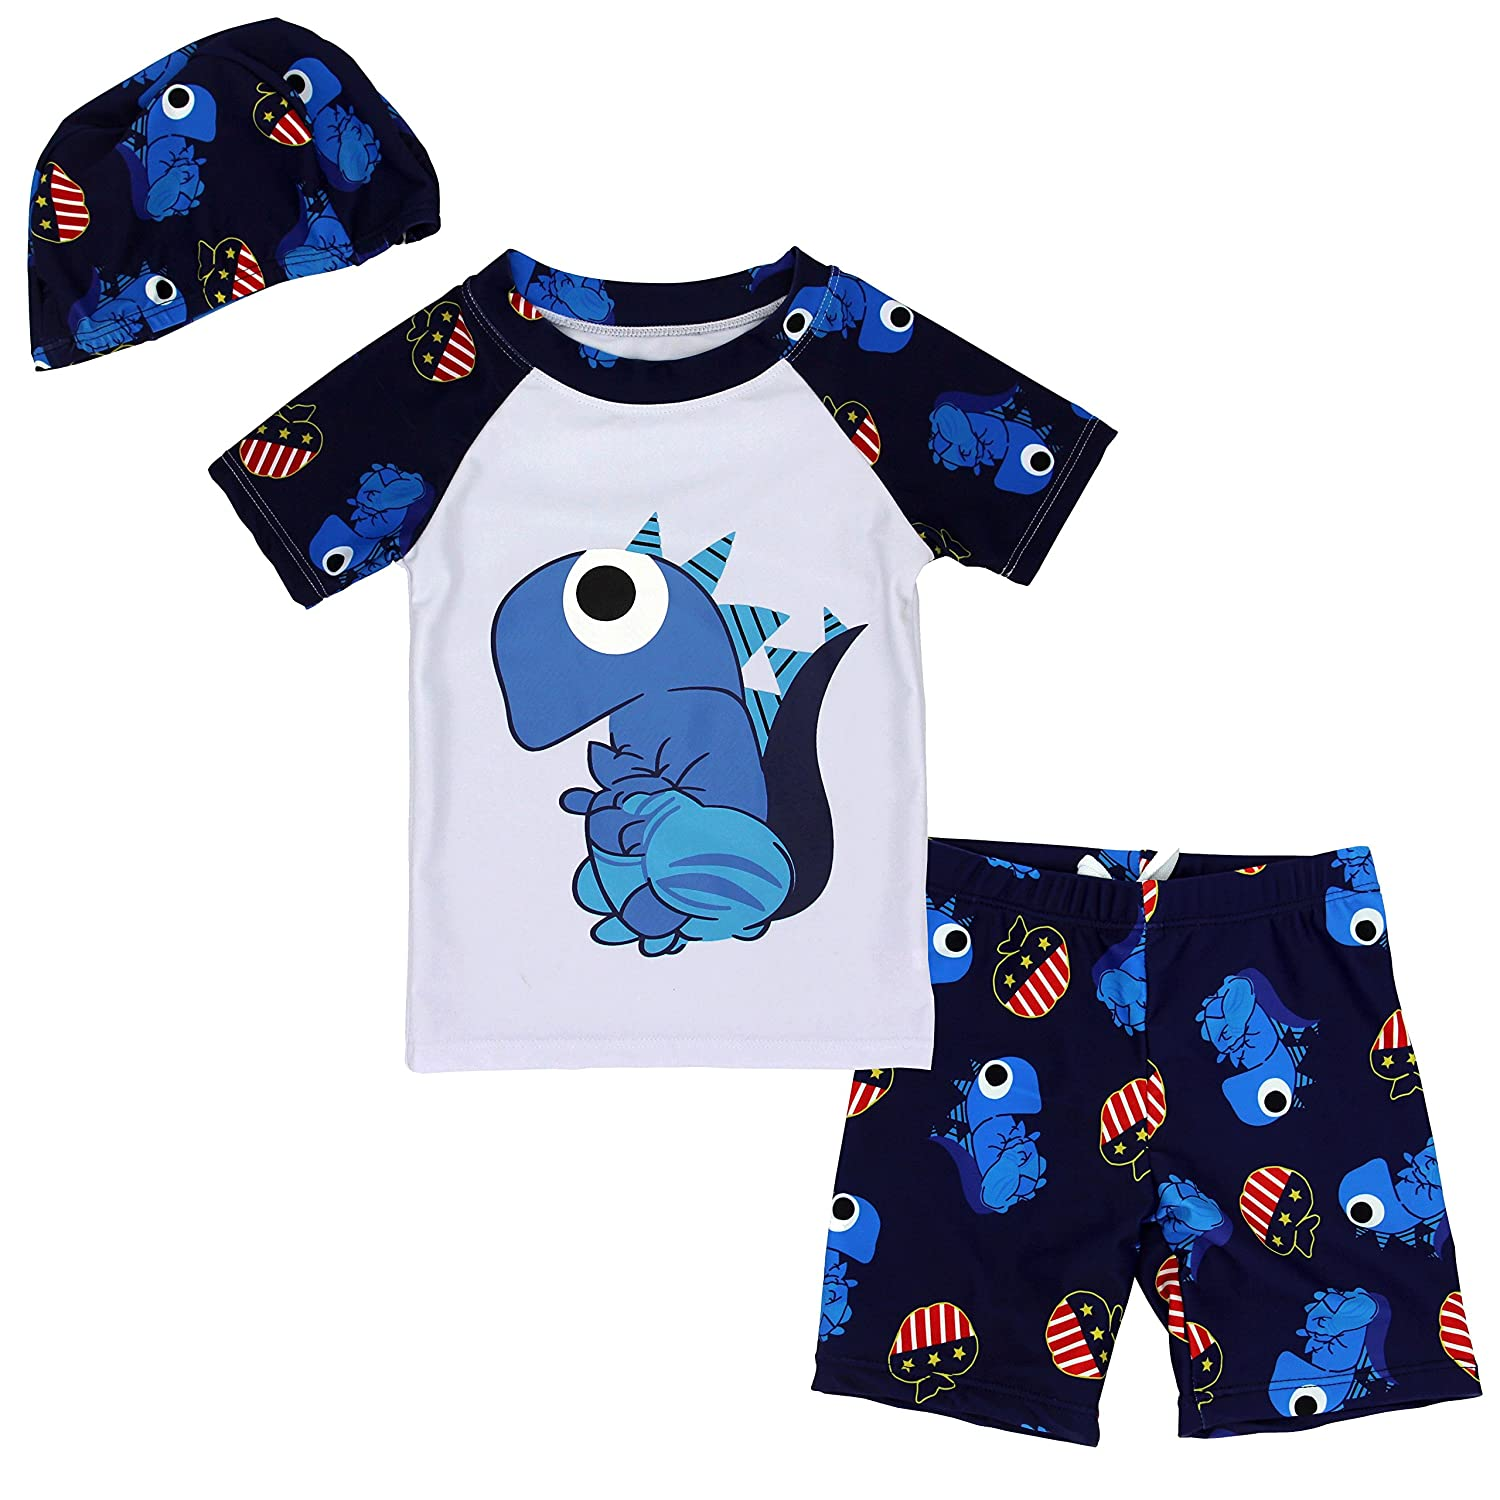 Boys Short Sleeve Rash Guard Dinosaur Swimsuit Set